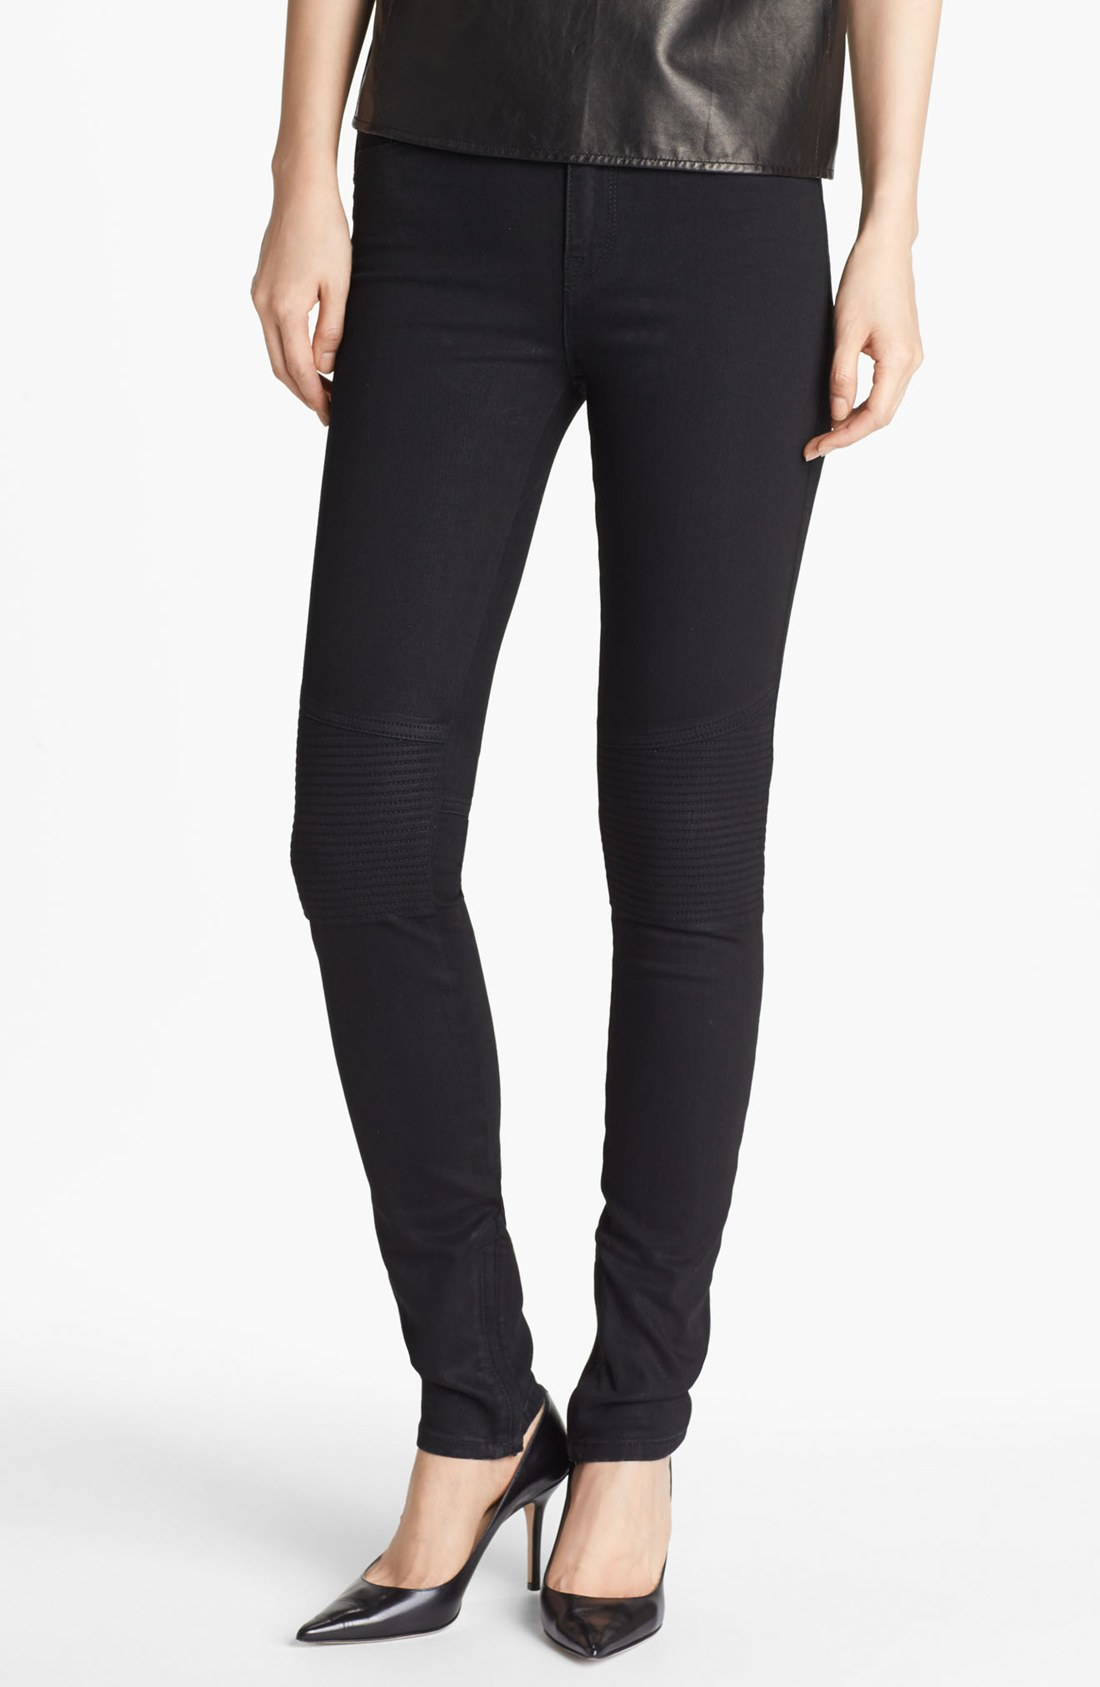 Shop for petite ankle zip jean at loadingbassqz.cf Free Shipping. Free Returns. All the time. Skip navigation. Free shipping. Free returns. All the time. See details. Designer. NYDJ Ami High Waist Twist Seam Stretch Ankle Skinny Jeans (Palm Desert) (Regular & Petite) $